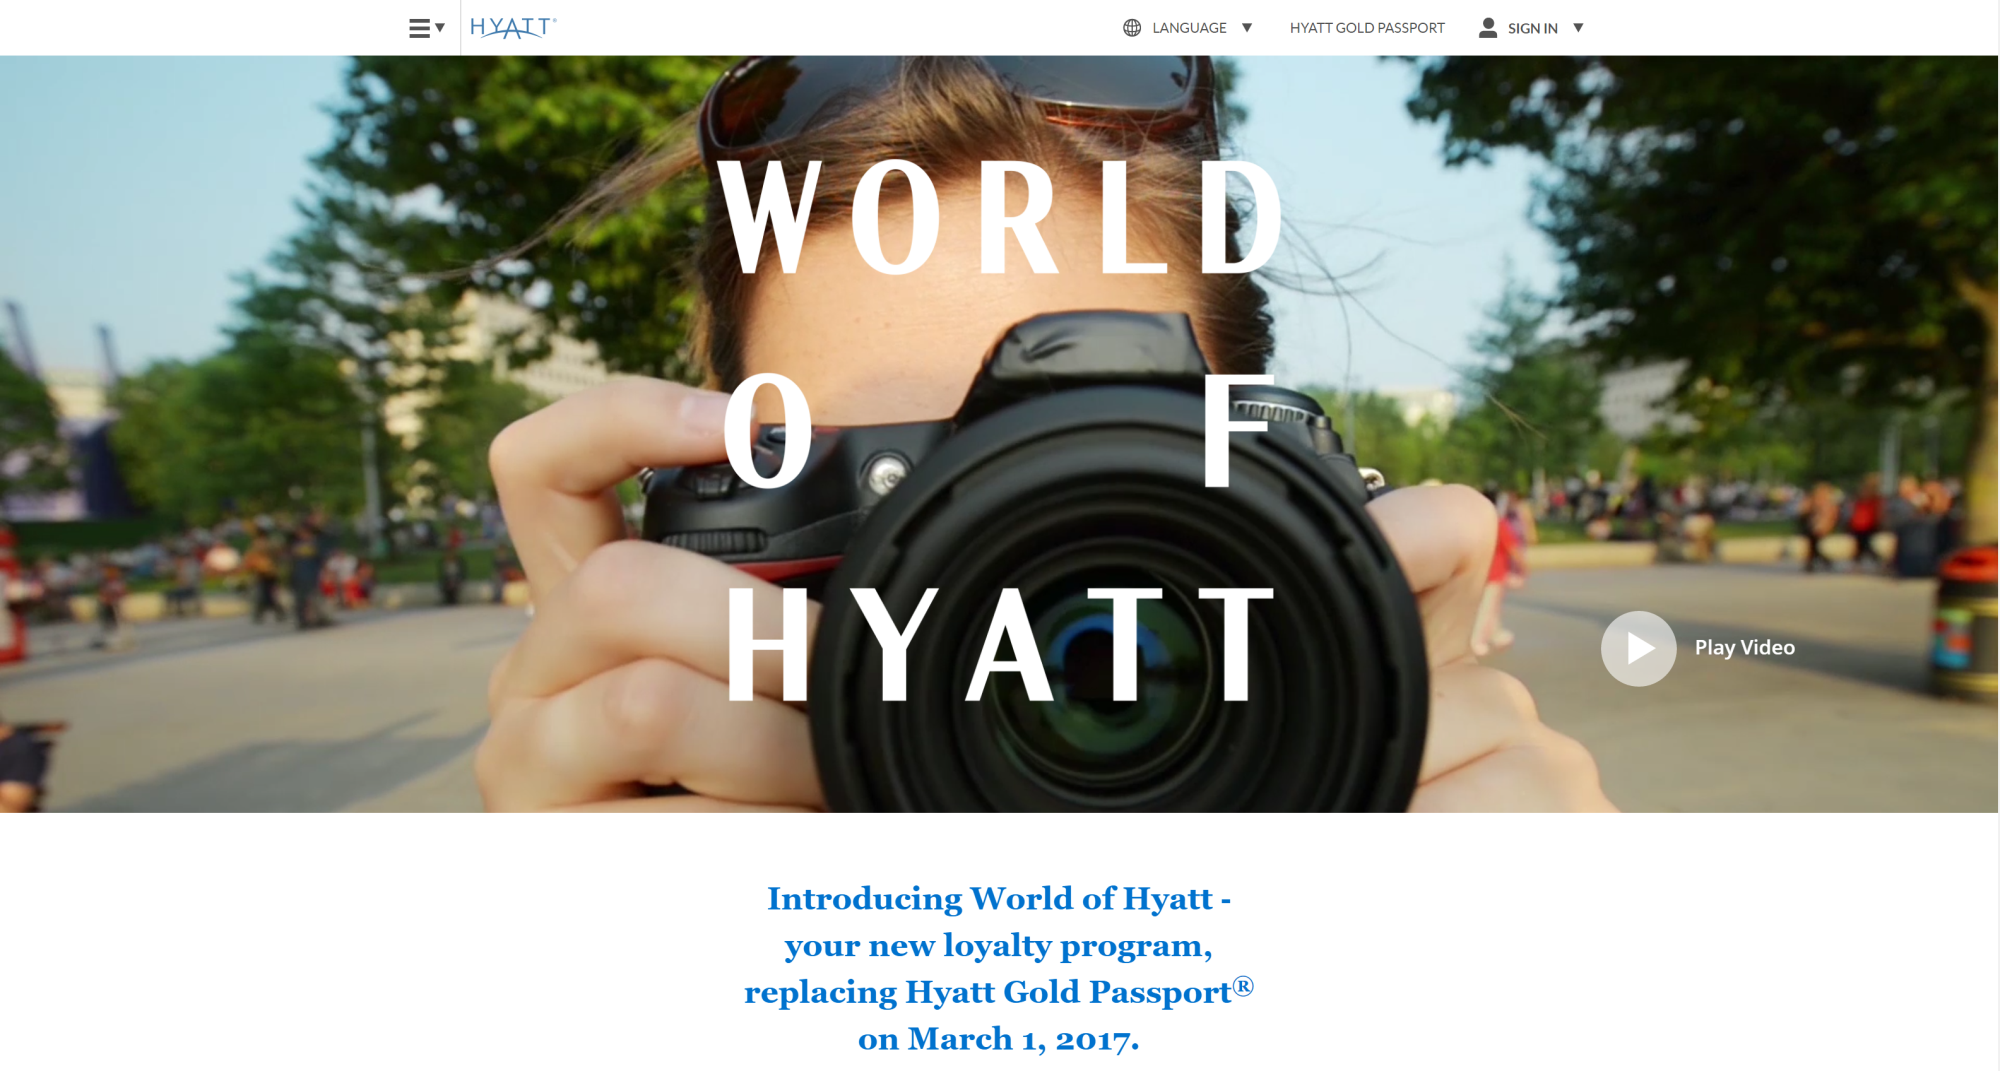 World of Hyatt – Hyatt's new Loyalty Program